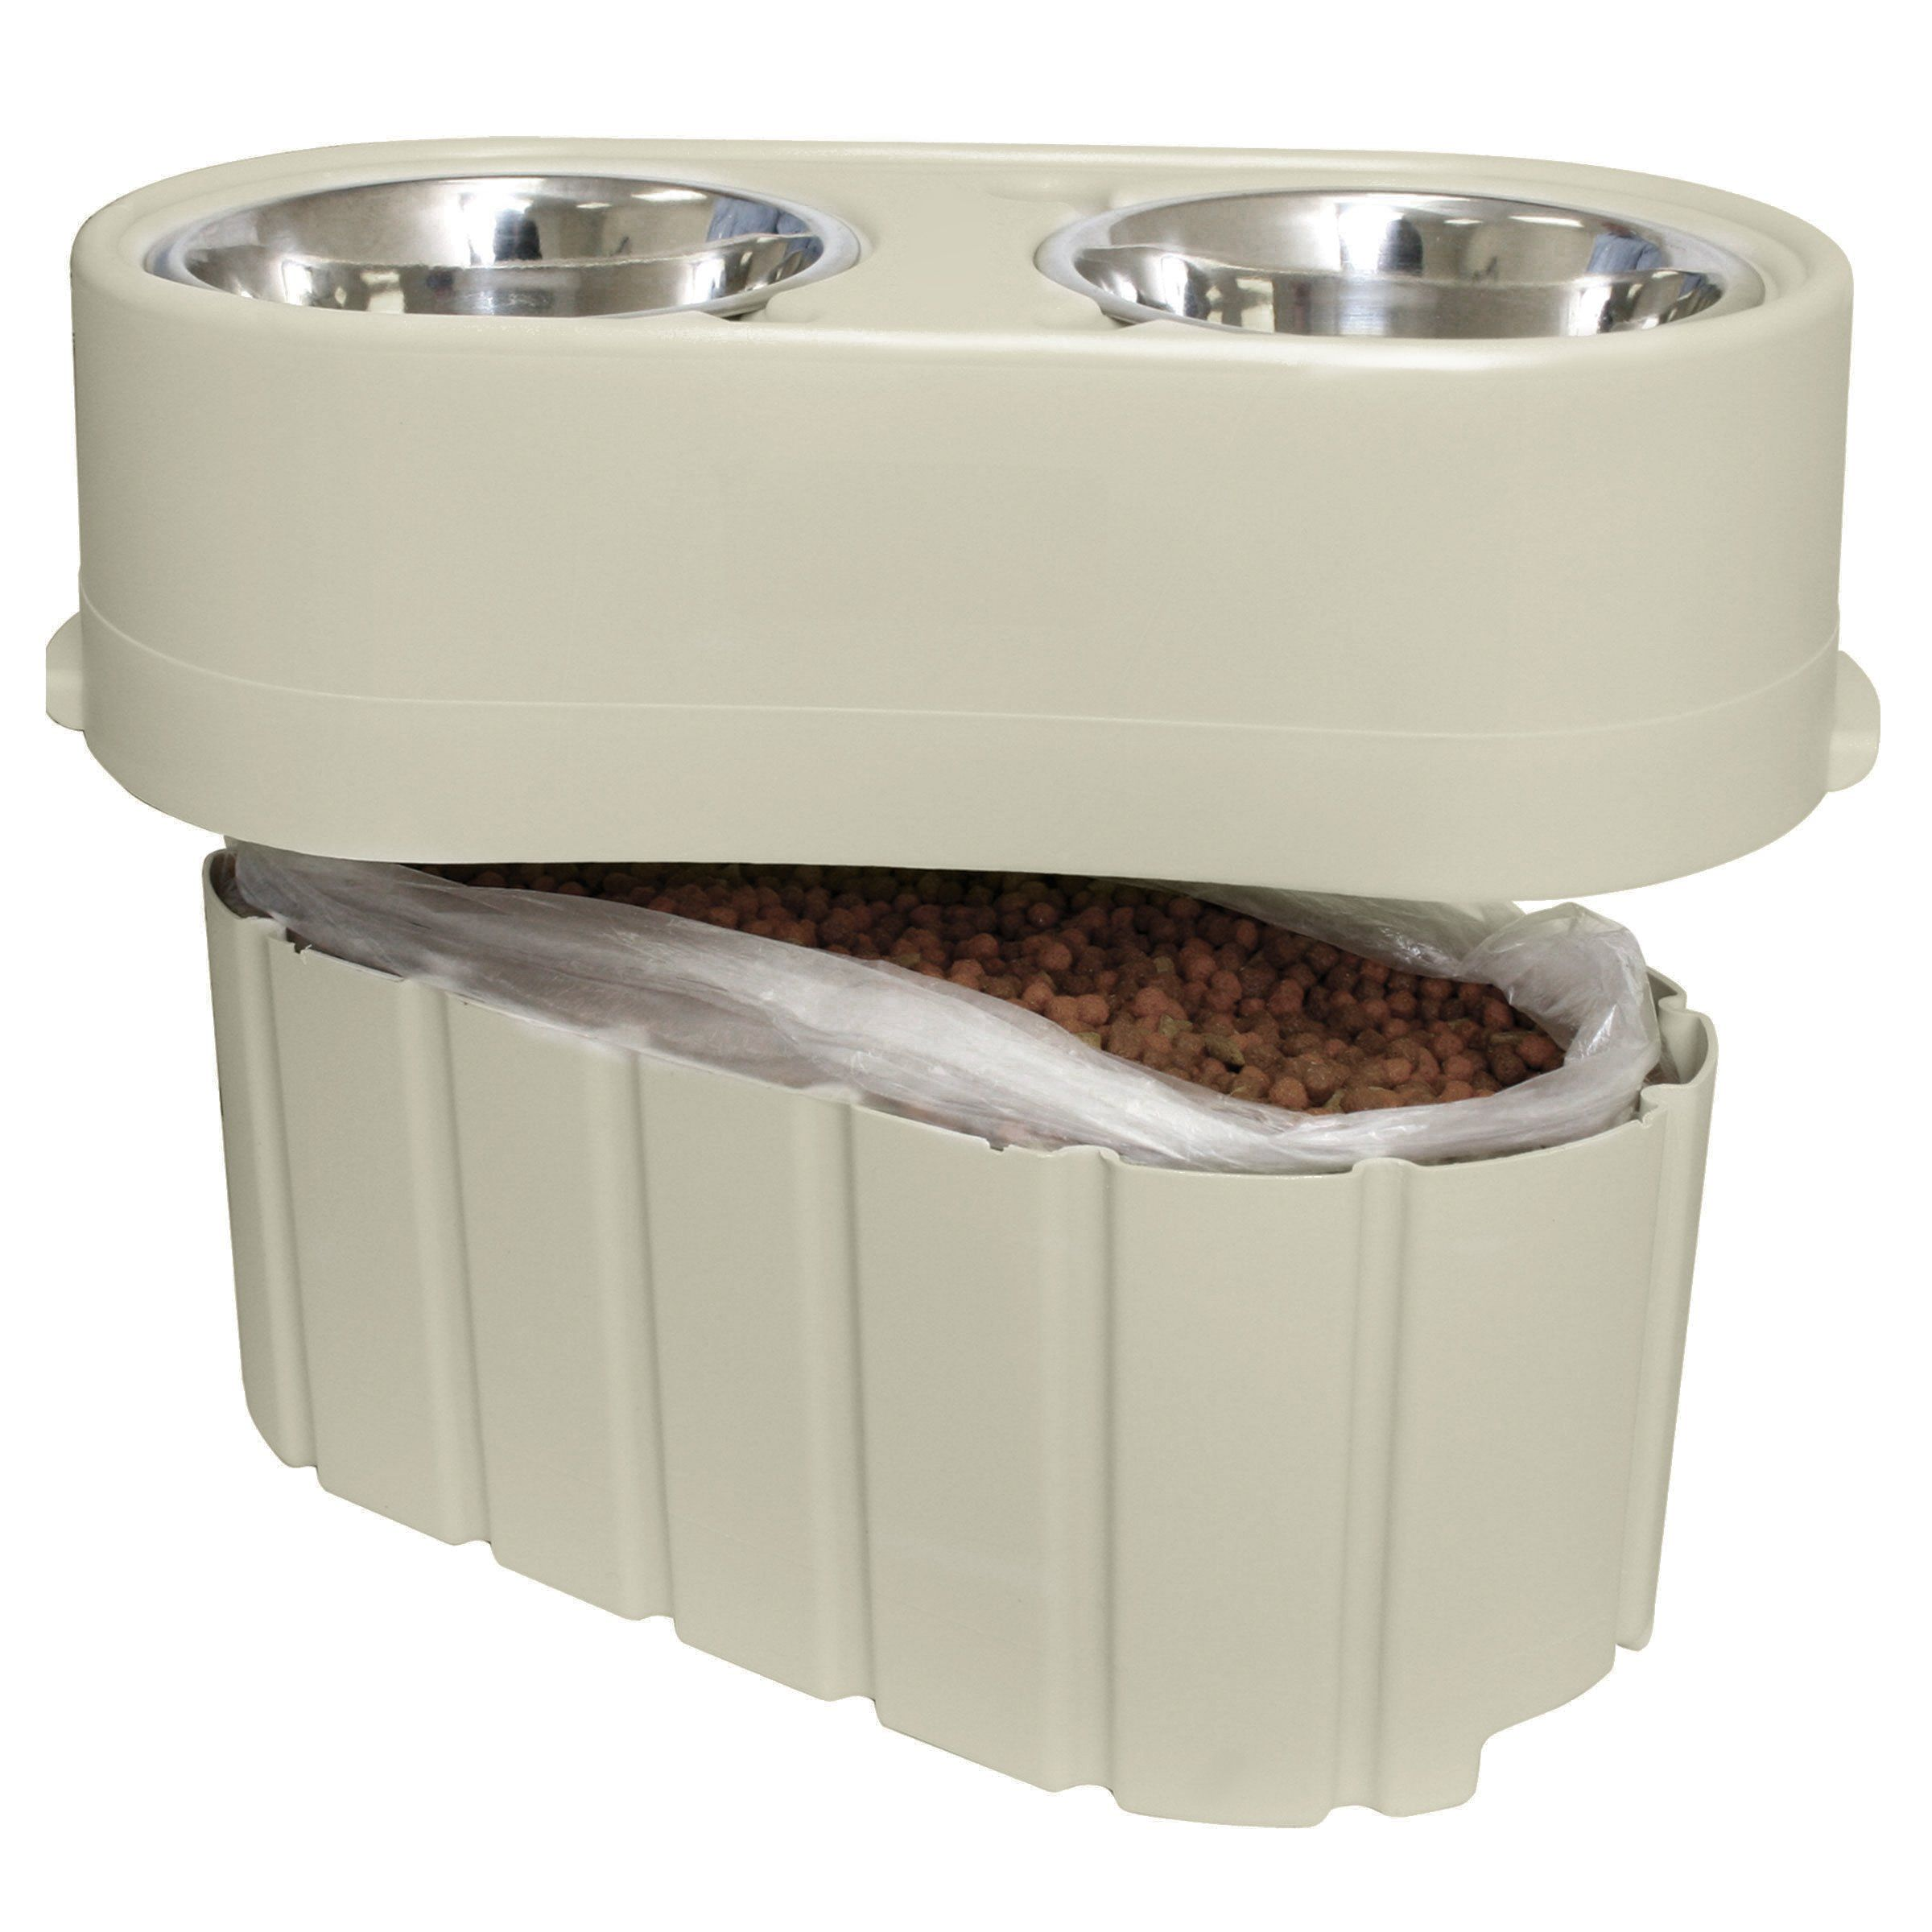 Ourpets Storenfeed Adjustable Feeder Read More At The Image